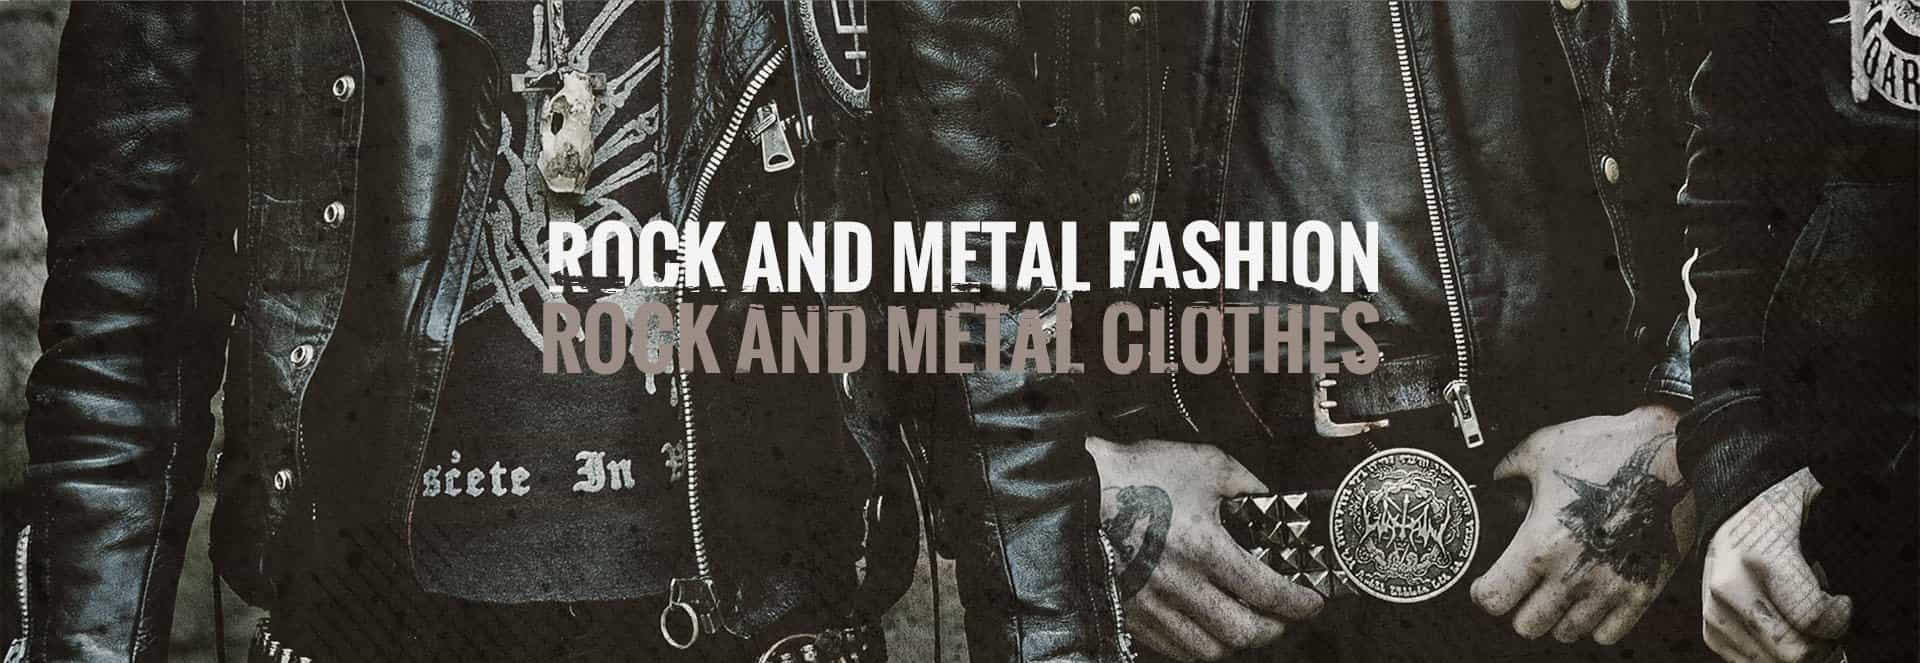 Rock and Metal Fashion